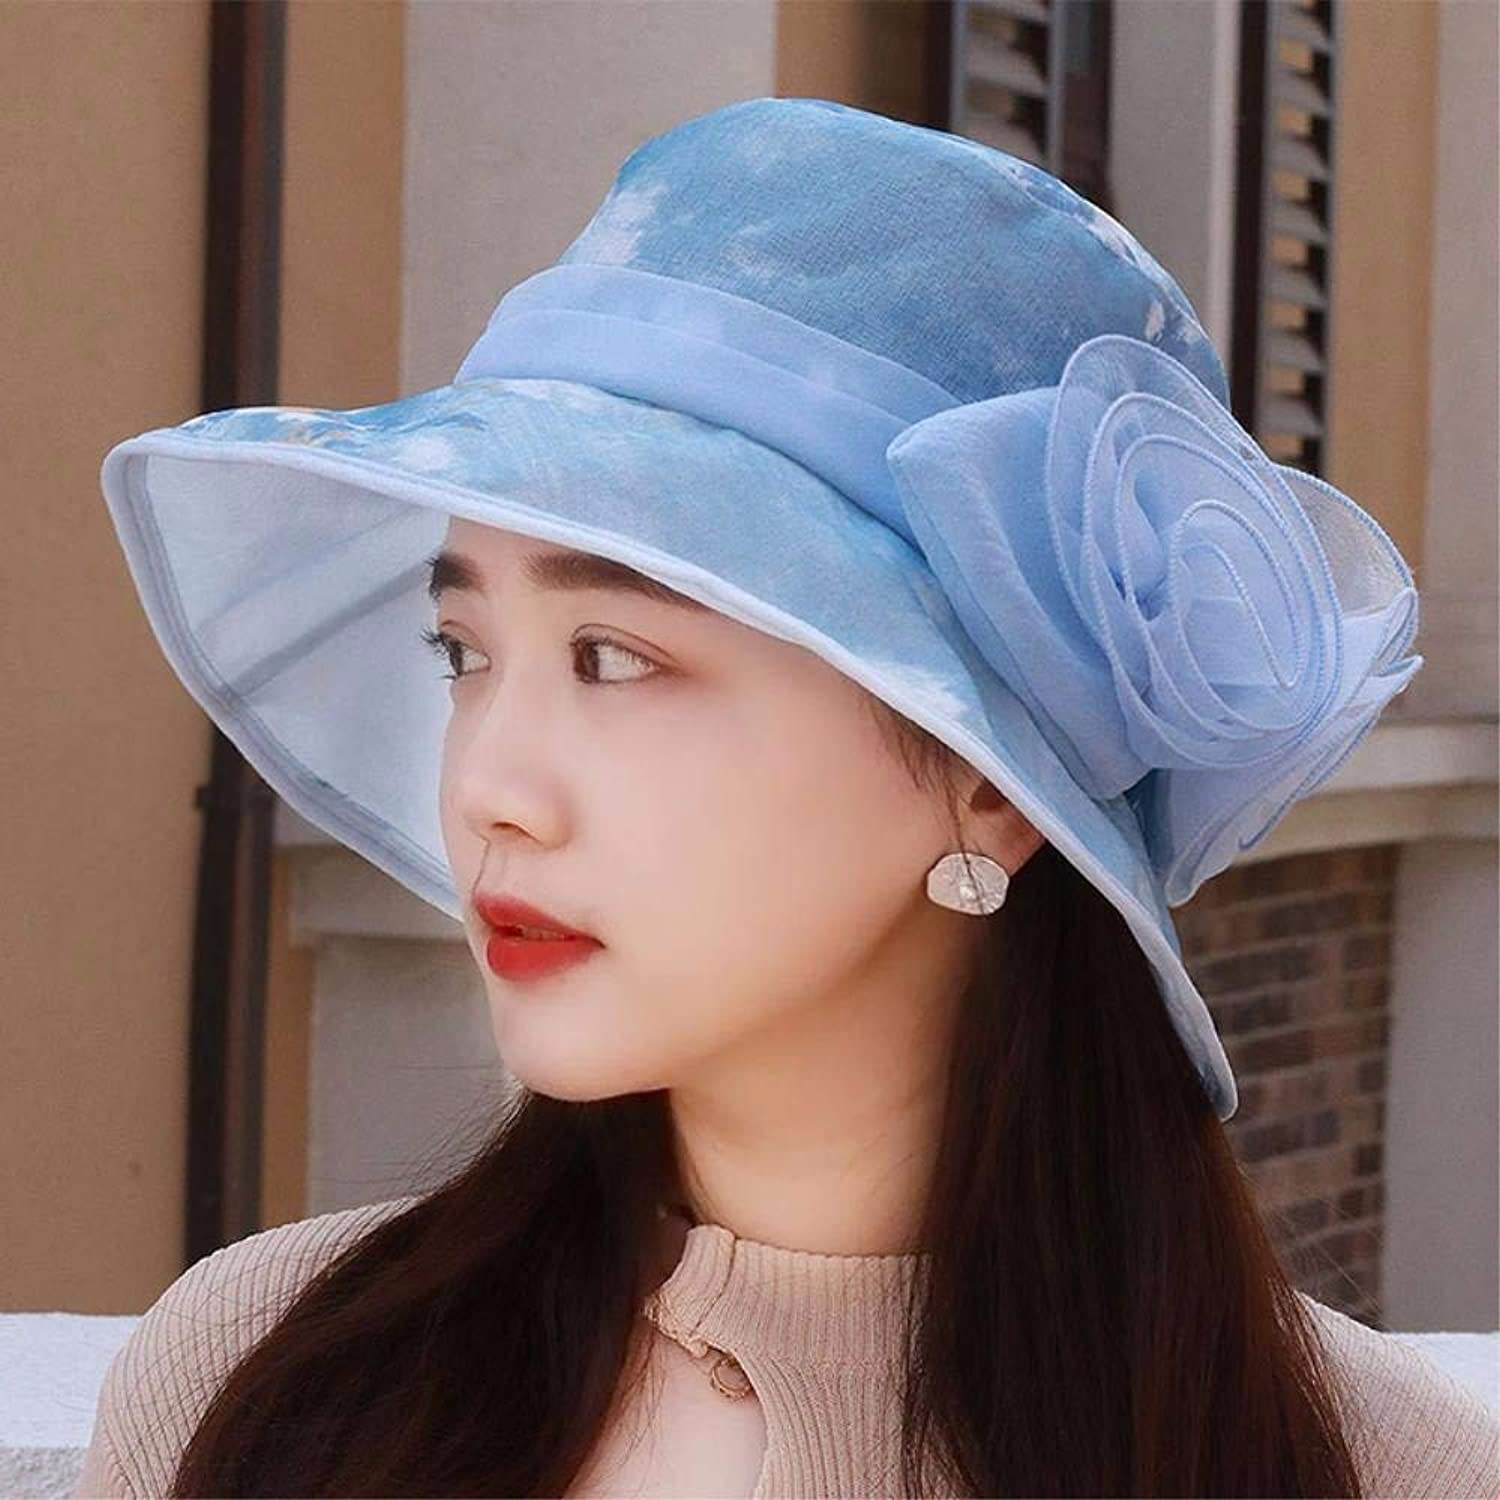 Beach Hat Hat The Girl Ink Painting Printing and Dyeing Yarn Woven hat Snow Cap Graphics face Small Visor Hats Sun Beach Cap Mother Cap Summer Sun Hat (color   The blueee)